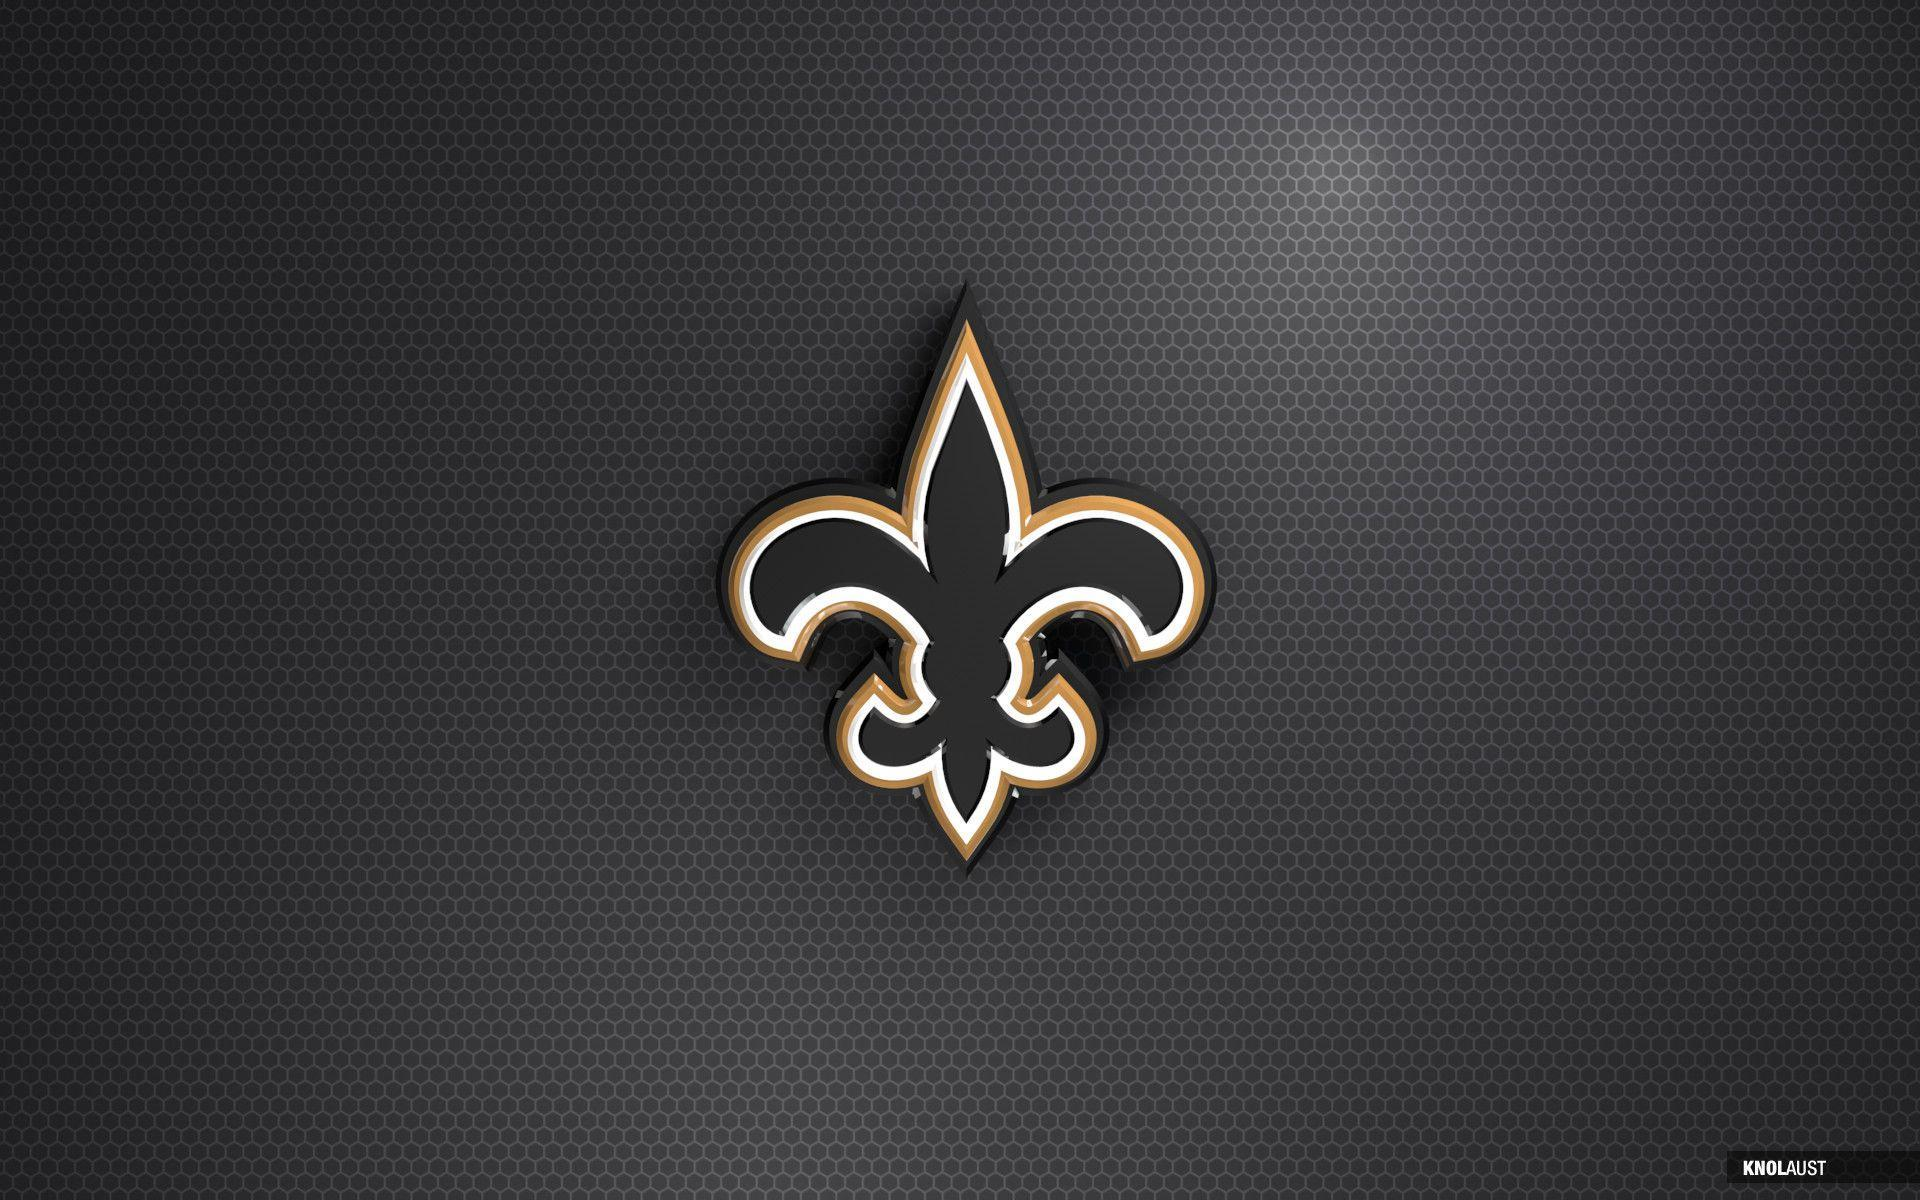 New Orleans Saints Wallpapers. New Orleans Saints 2016 Wallpapers   Wallpaper Cave